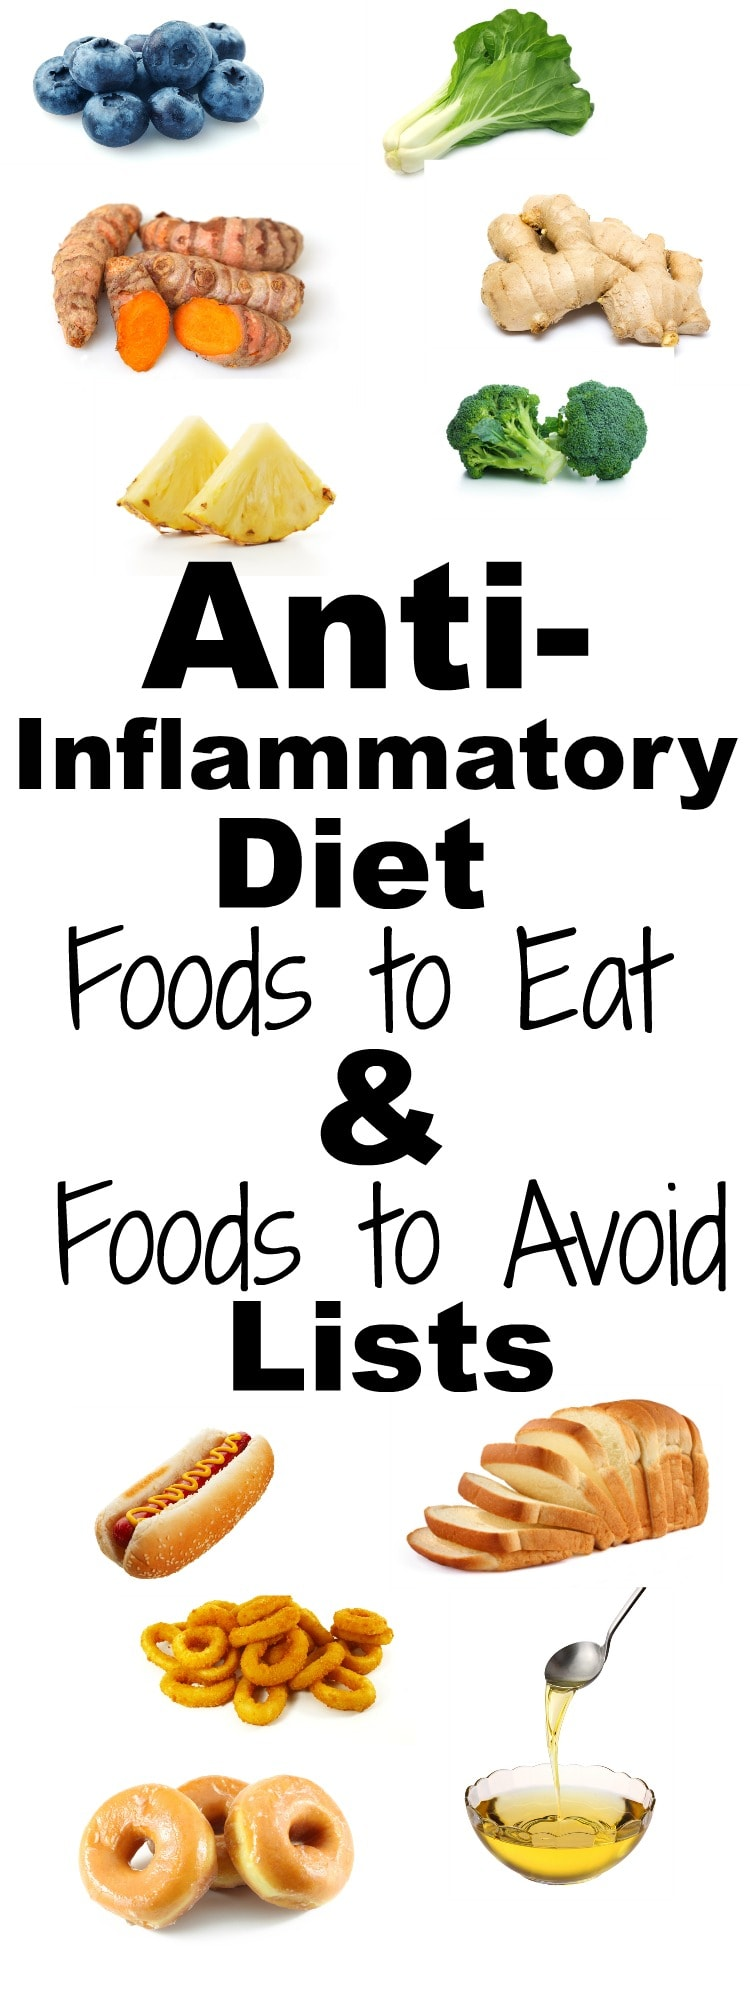 anti-inflammatory diet: list of foods to eat and avoid - happy